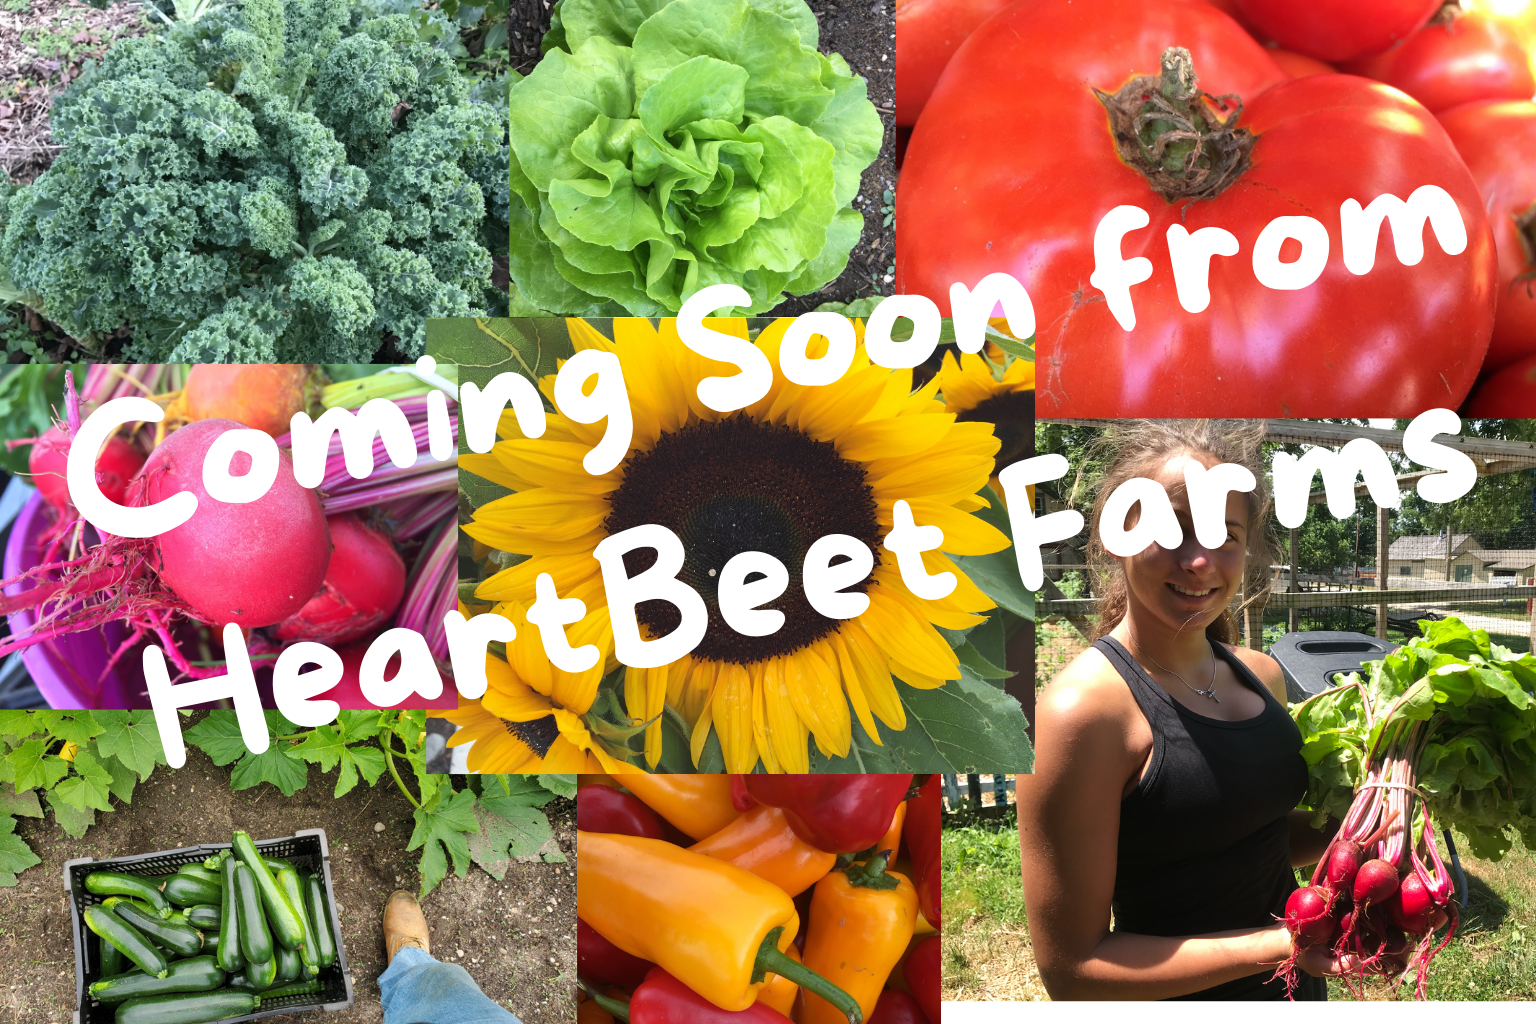 Coming soon from HeartBeet Farms